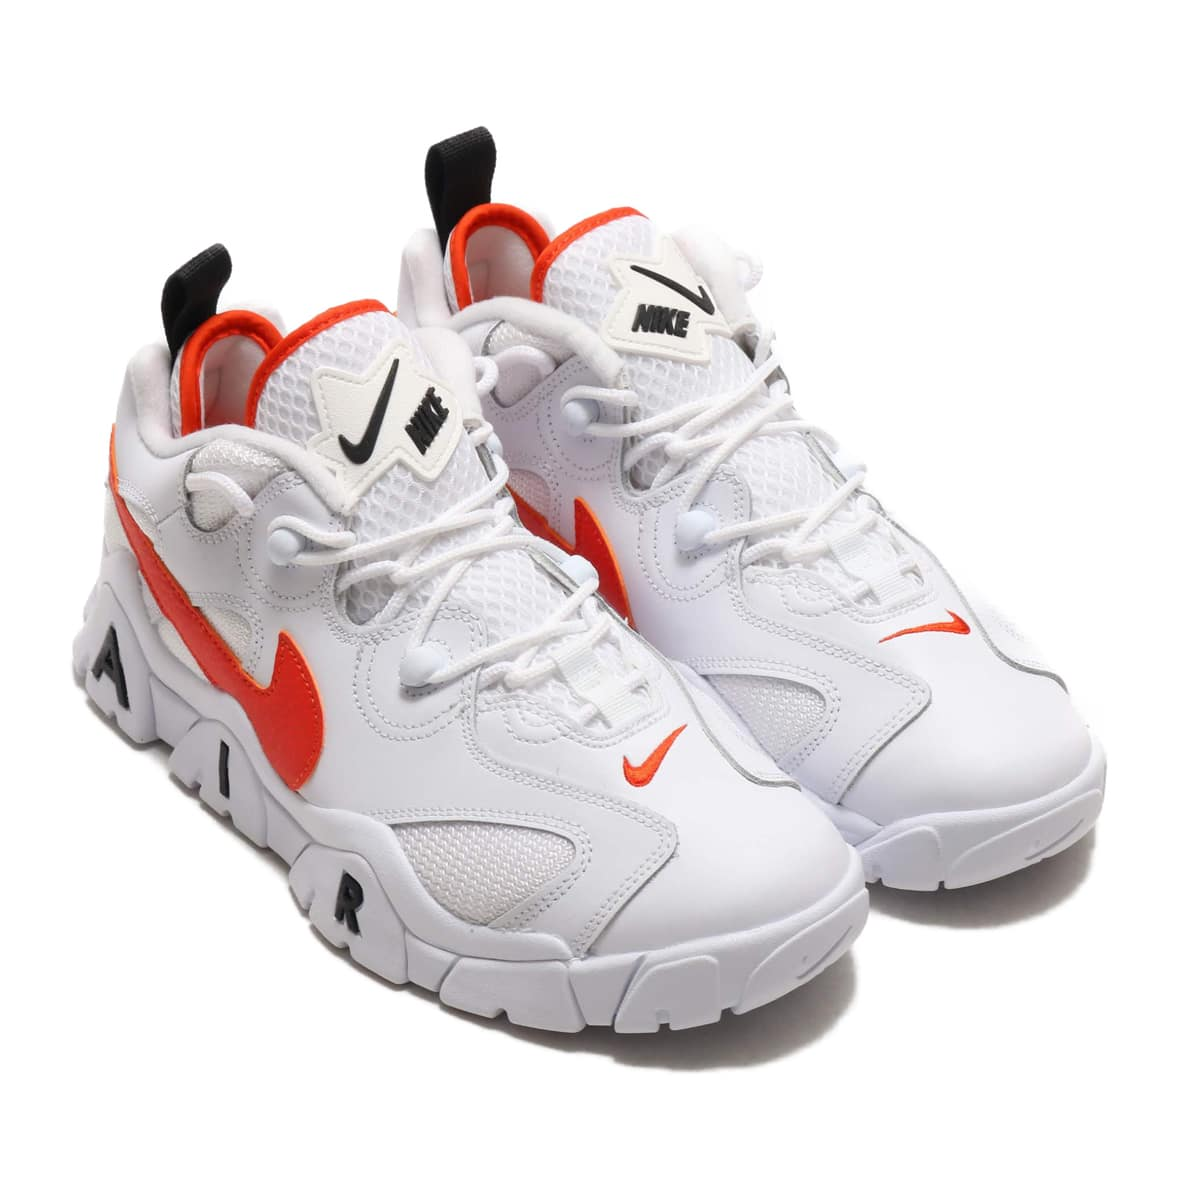 NIKE AIR BARRAGE LOW EMB WHITE/TEAM ORANGE-BLACK-BLACK 20SU-S_photo_large